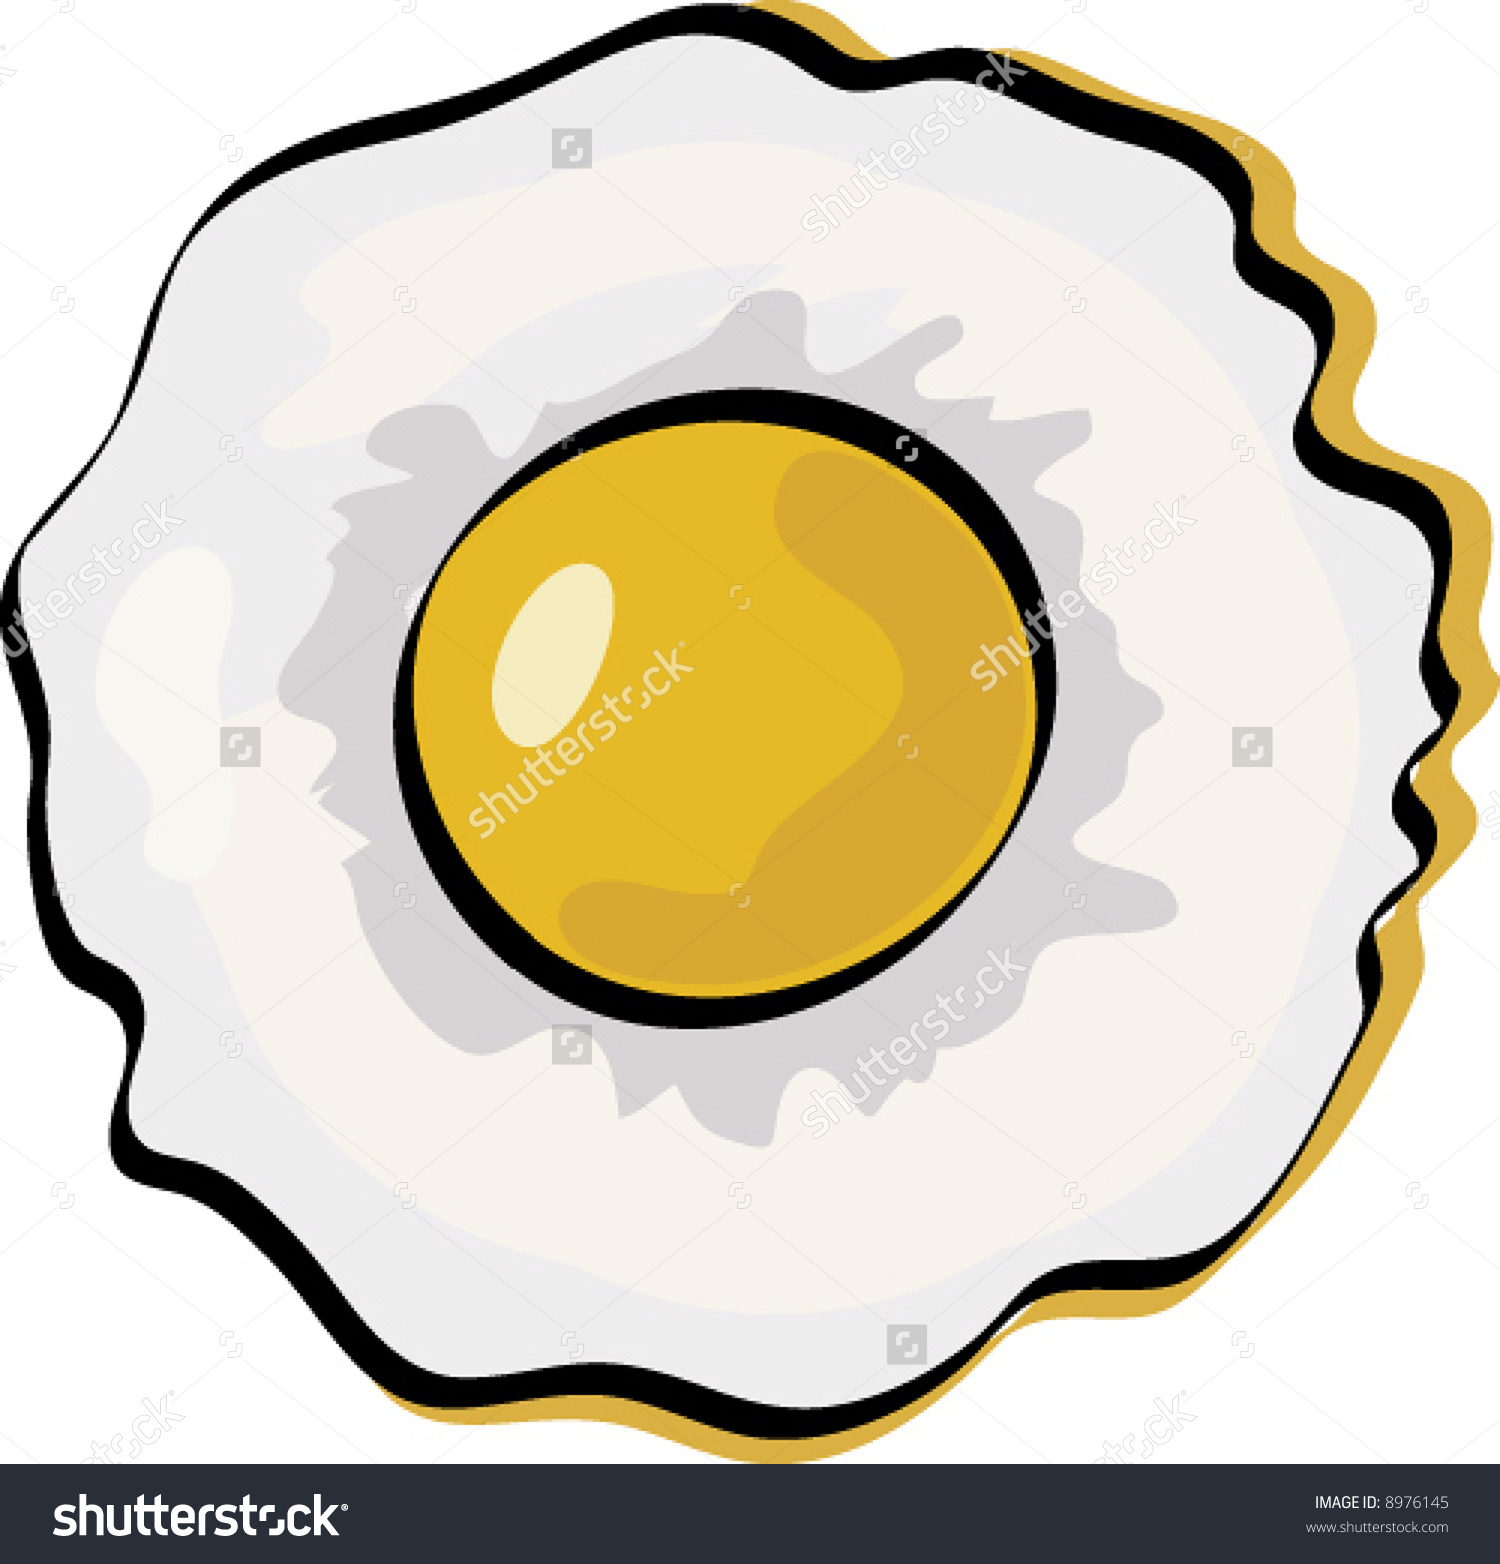 Sunny-side up eggs clipart #6